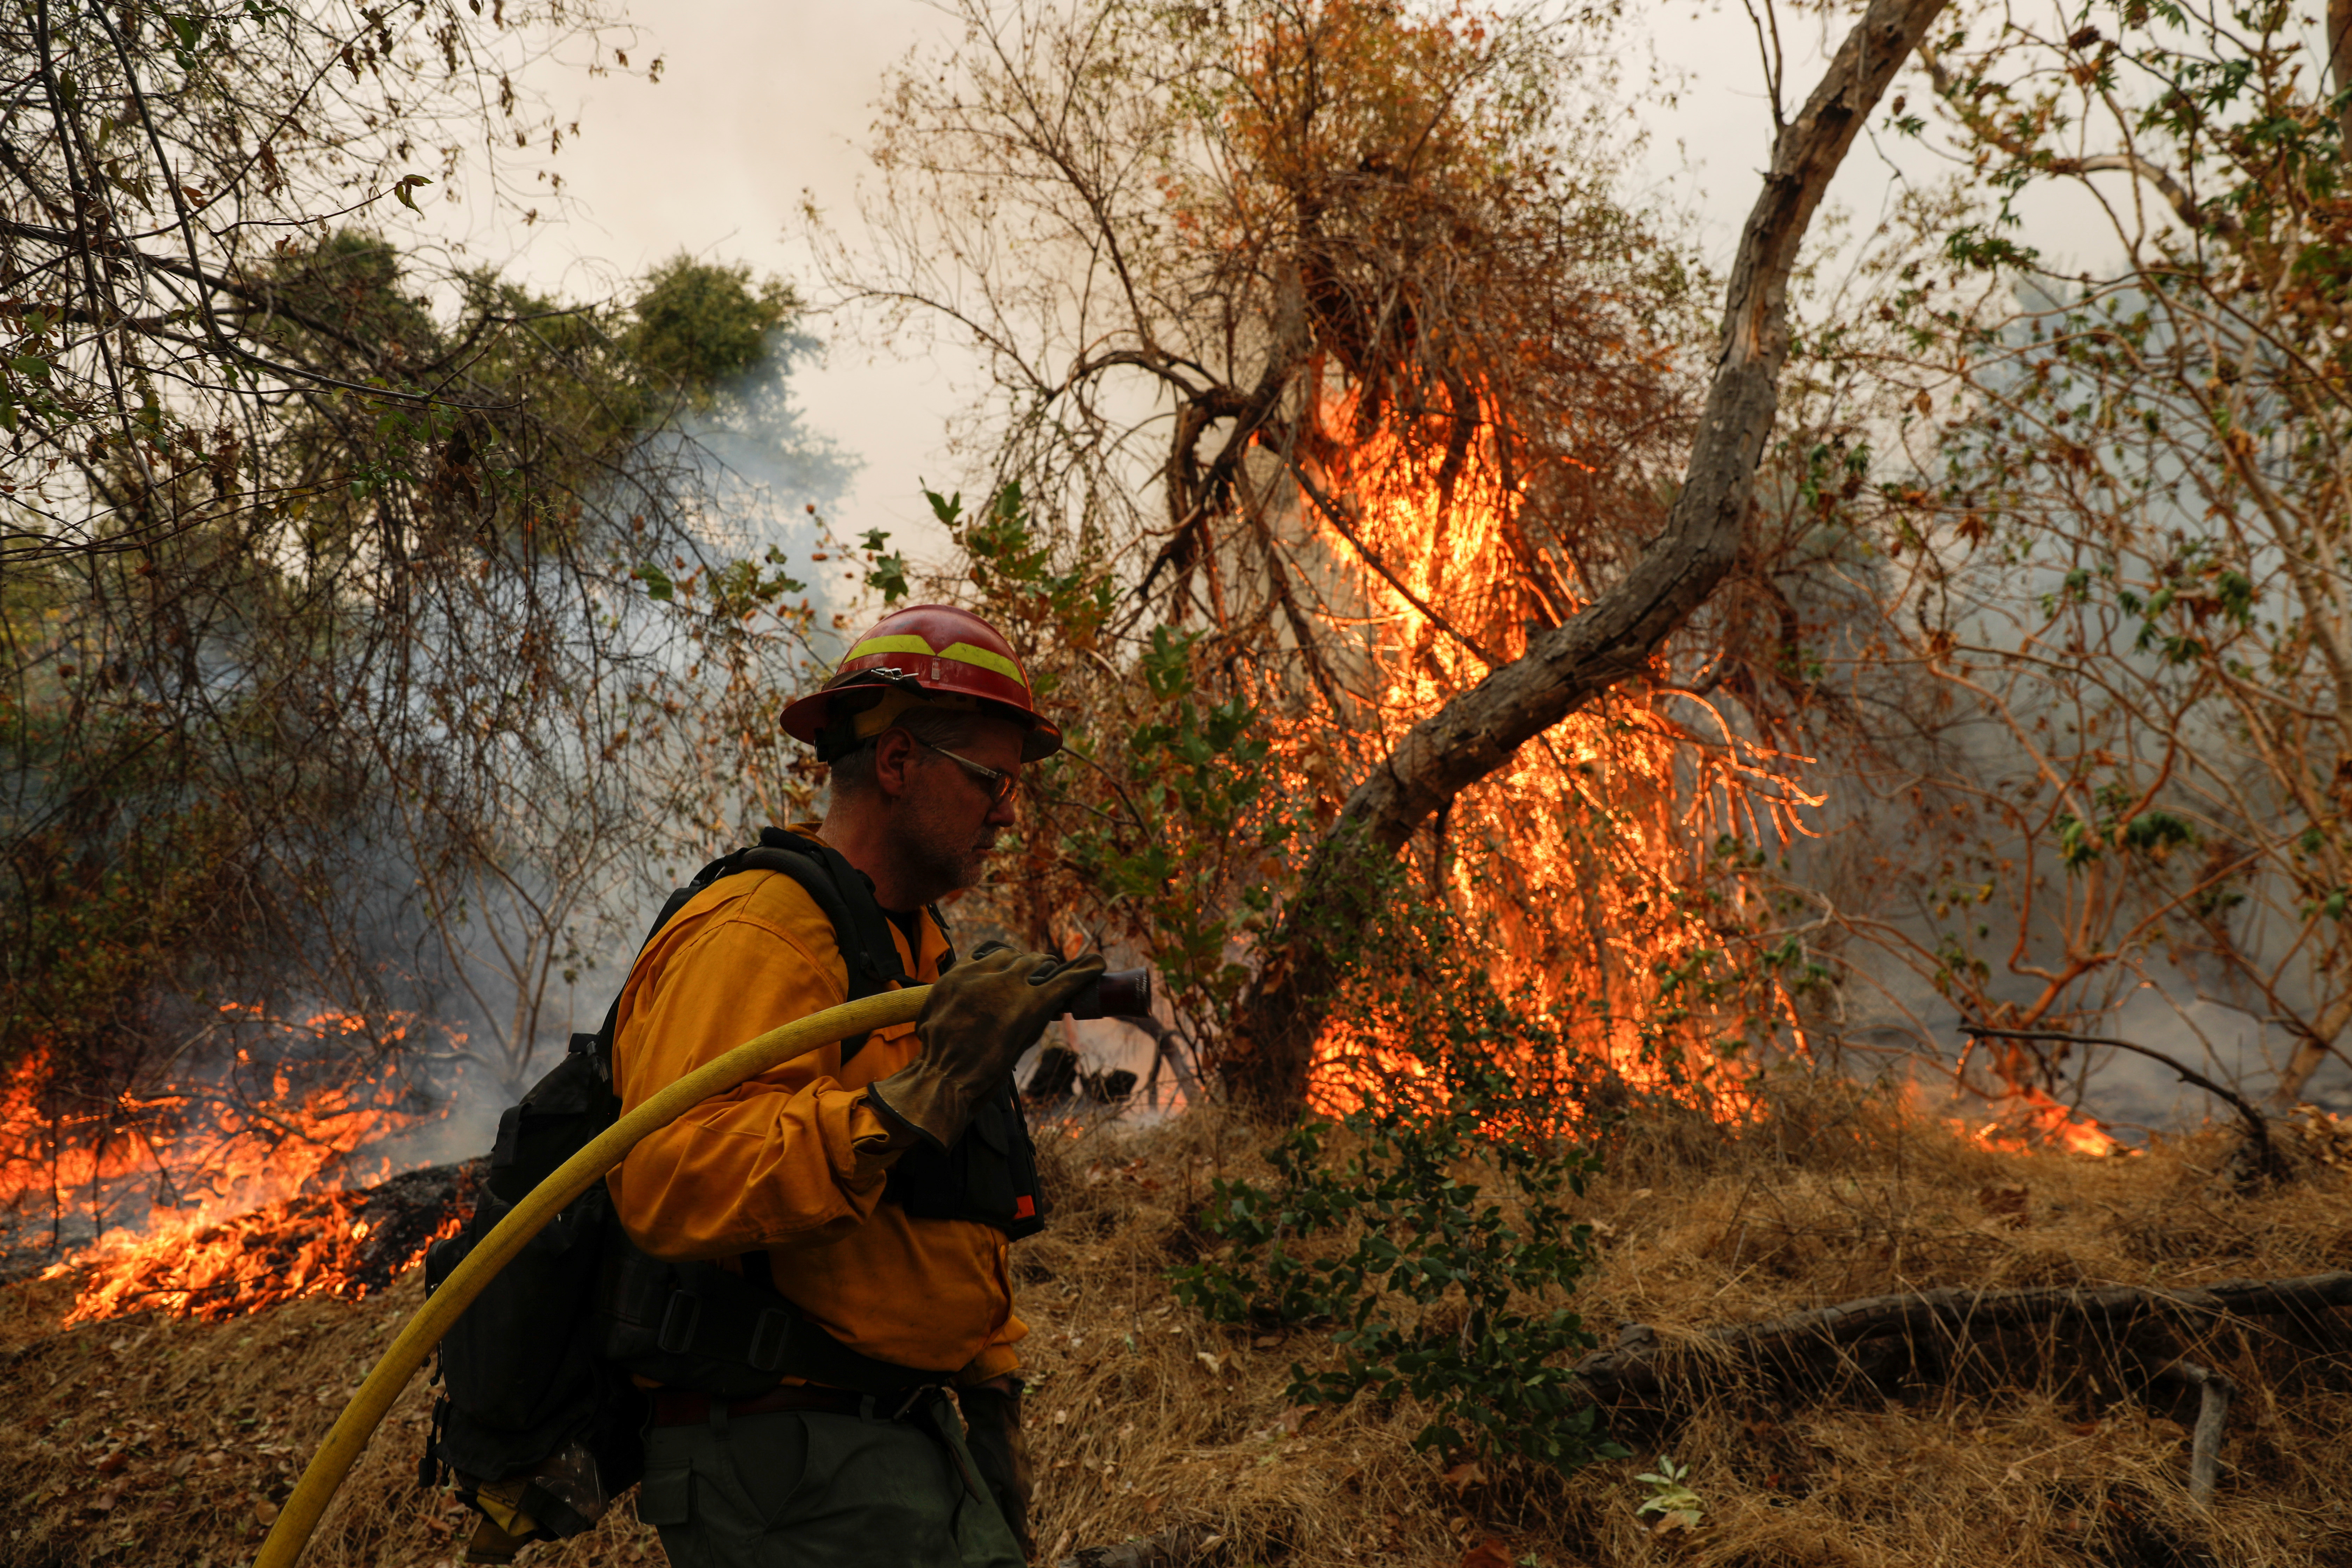 A firefighter works to extinguish the Bobcat Fire after an evacuation was ordered for the residents of Arcadia, California, U.S., September 13, 2020. REUTERS/Patrick T. Fallon - RC20YI9T4GX5